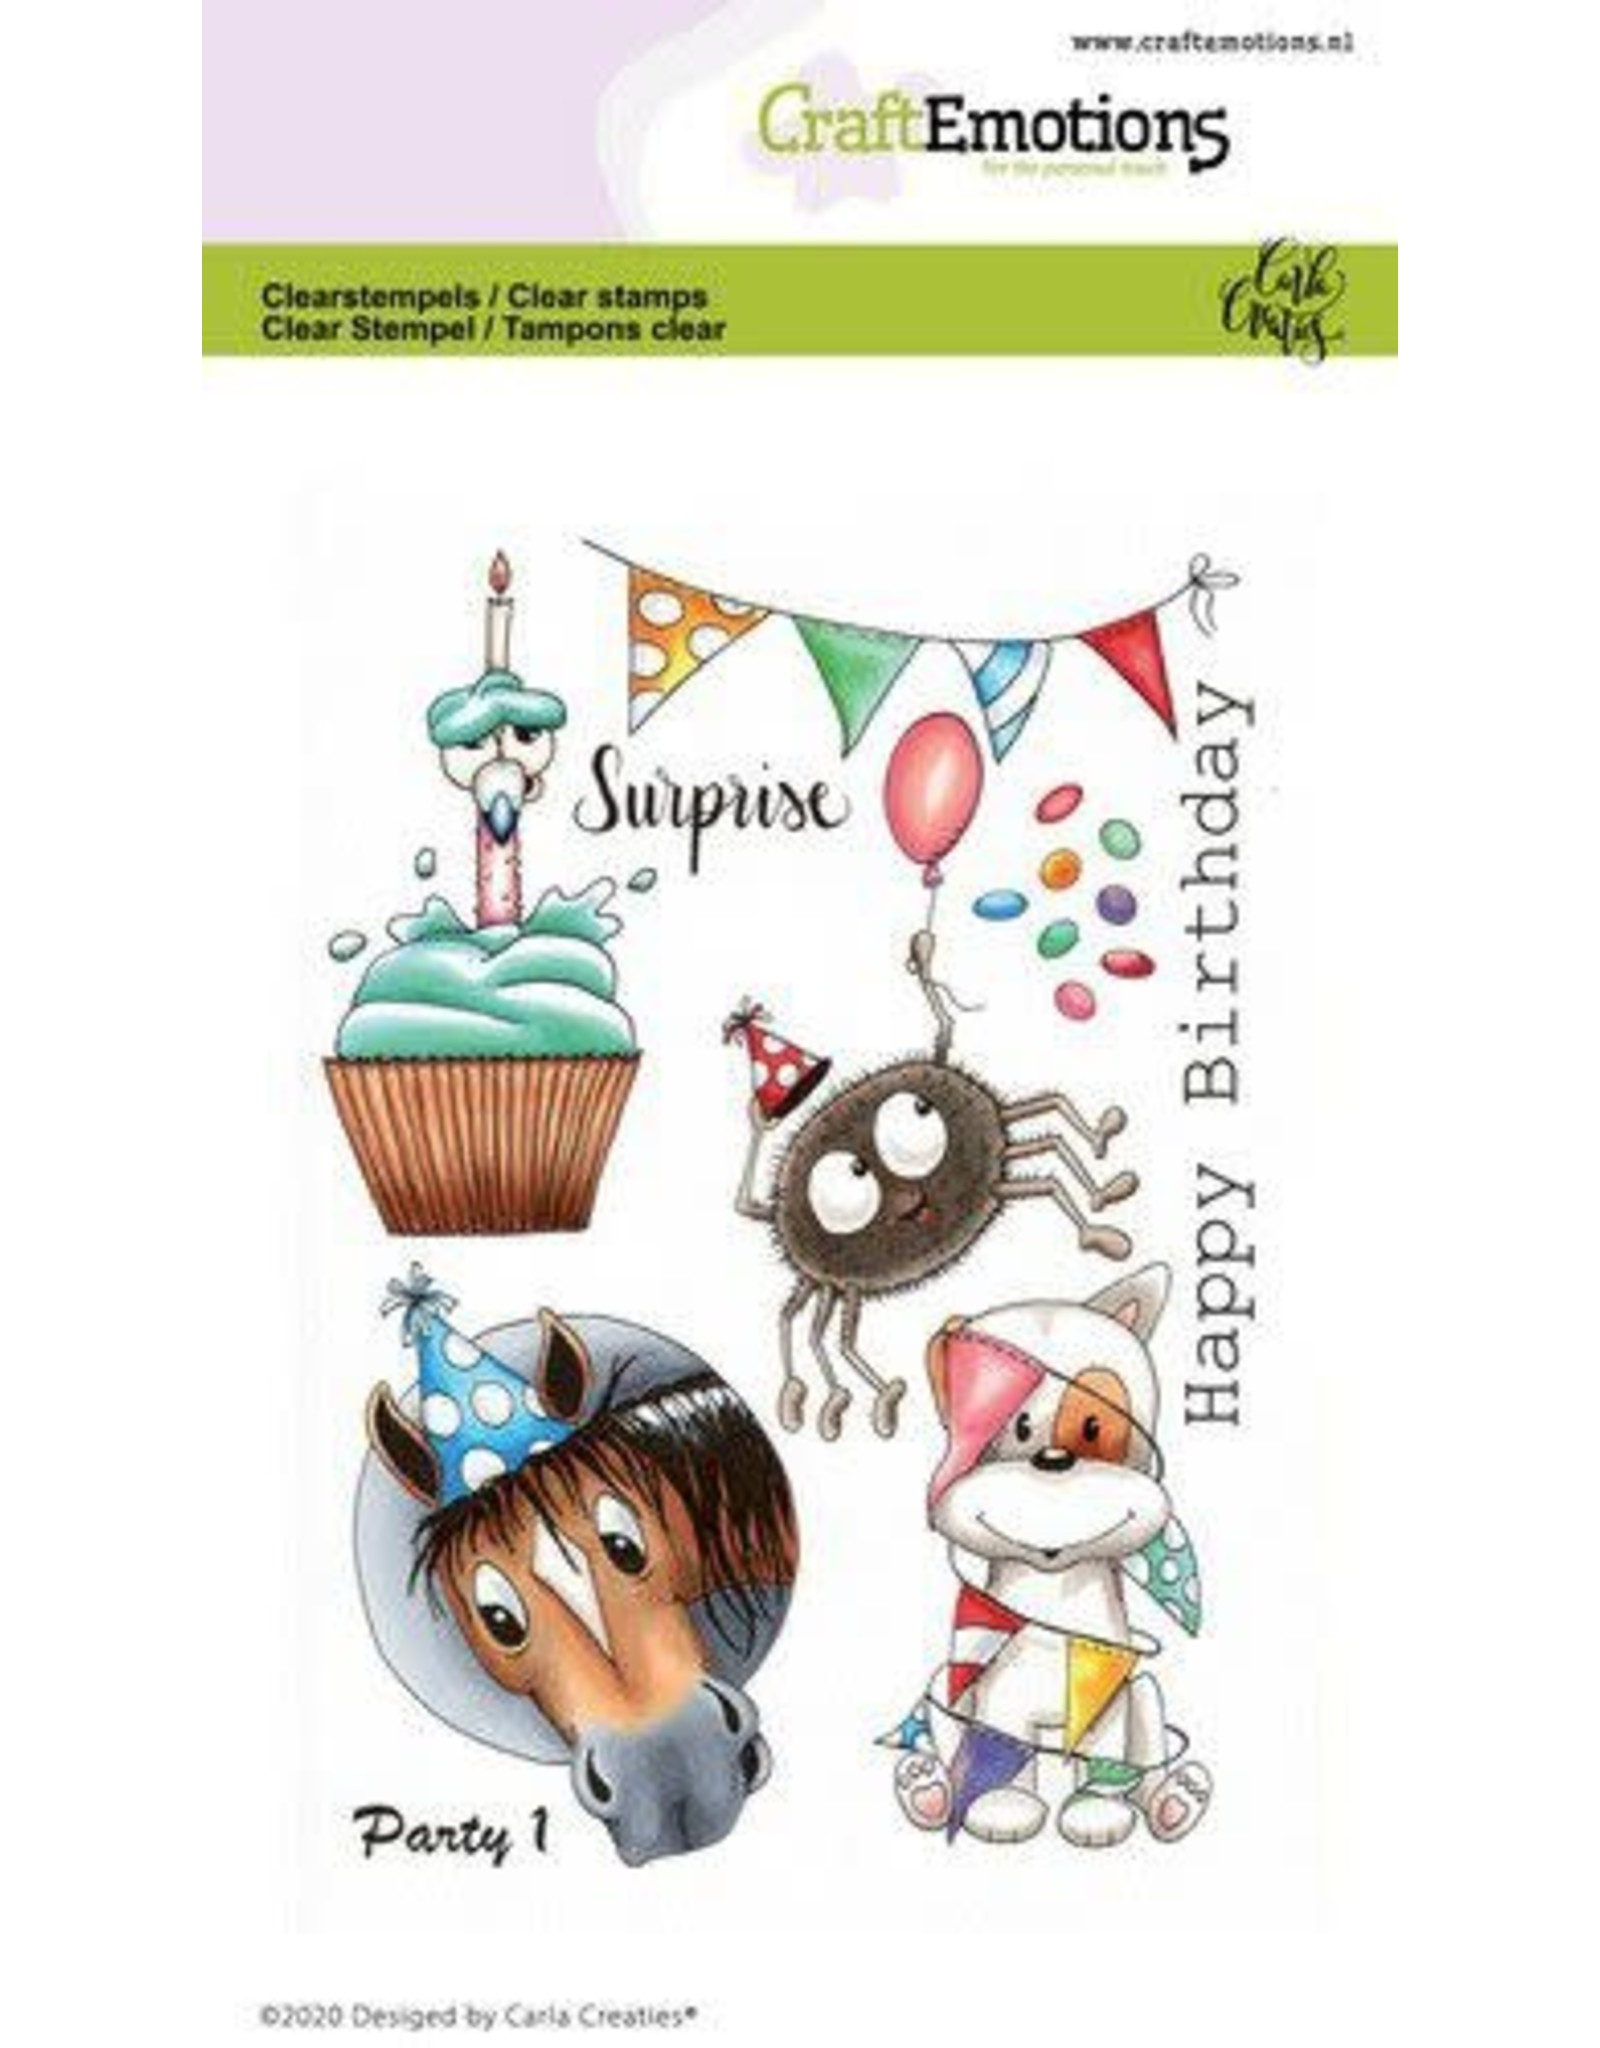 Craft Emotions CraftEmotions clearstamps A6 - Party 1 Carla Creaties